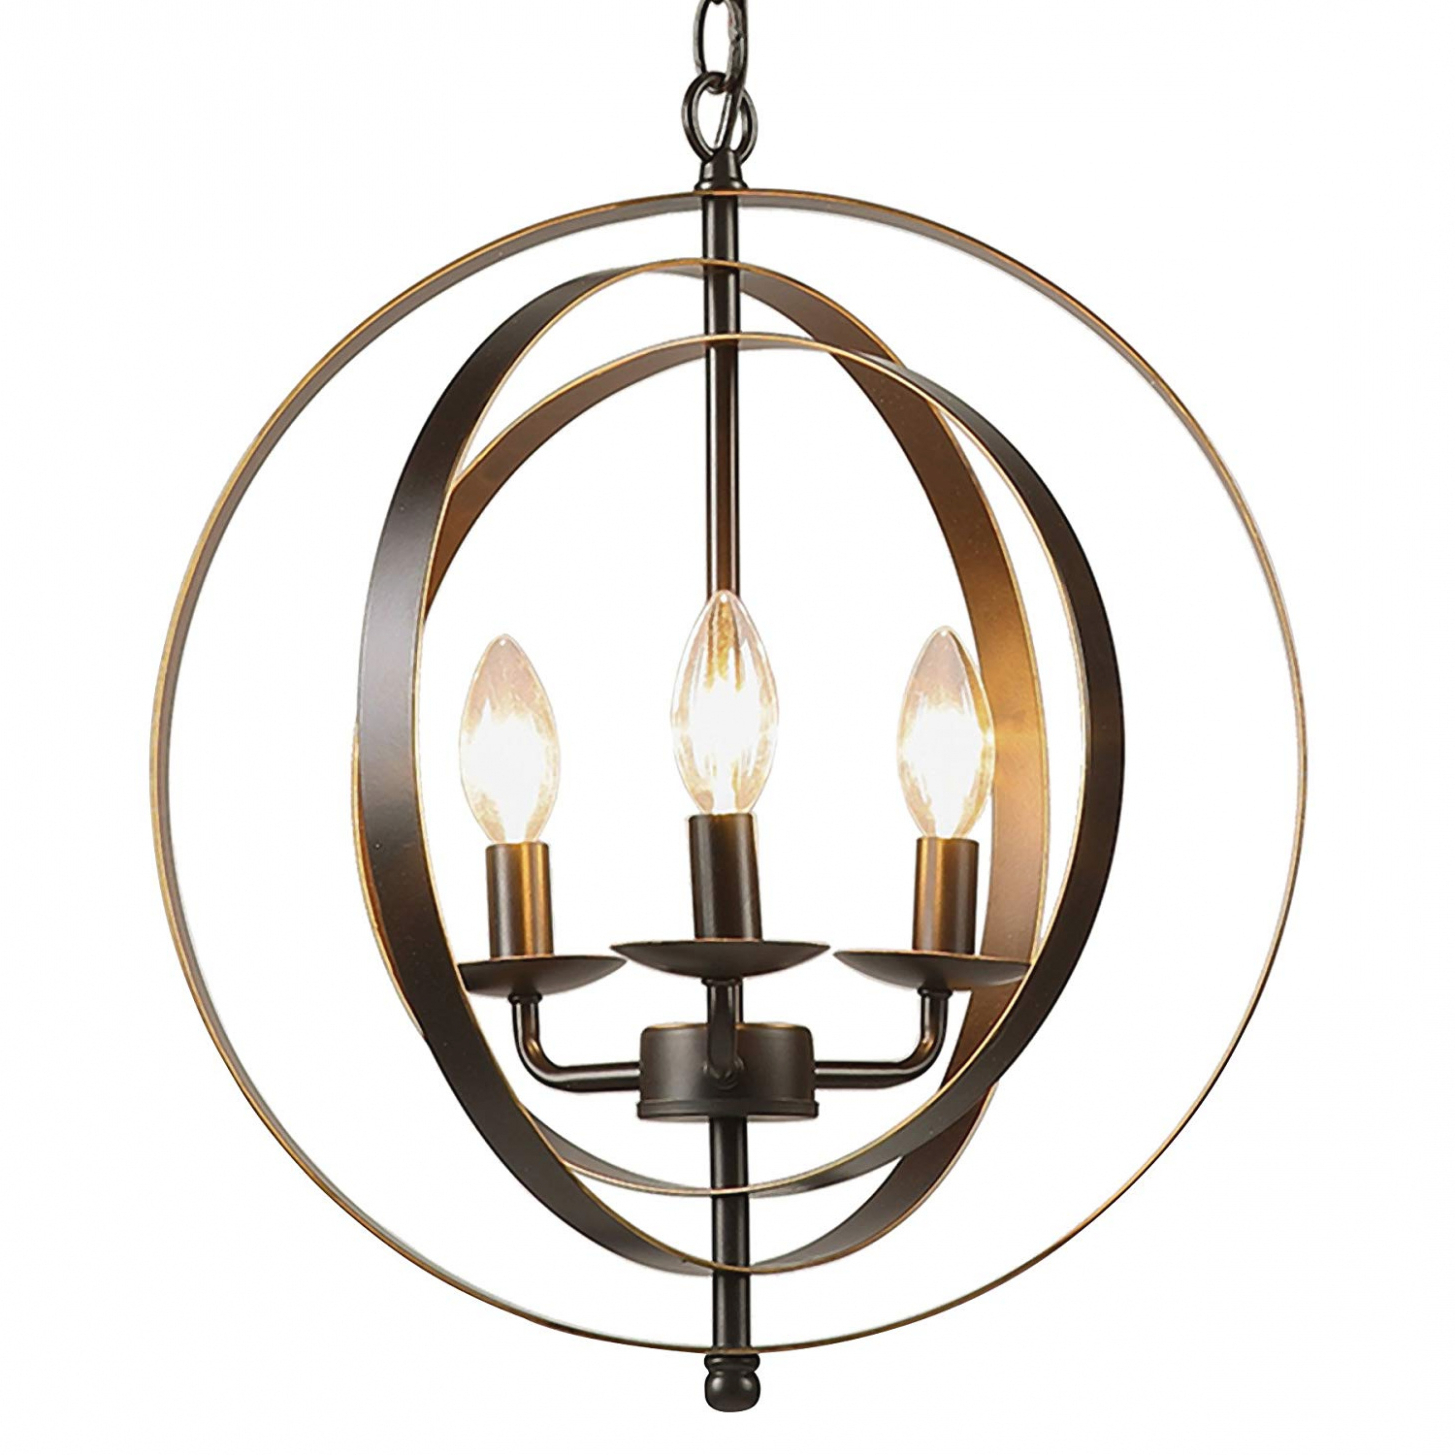 Shipststour 3 Light Globe Chandeliers Pertaining To Famous Lighting (View 17 of 20)